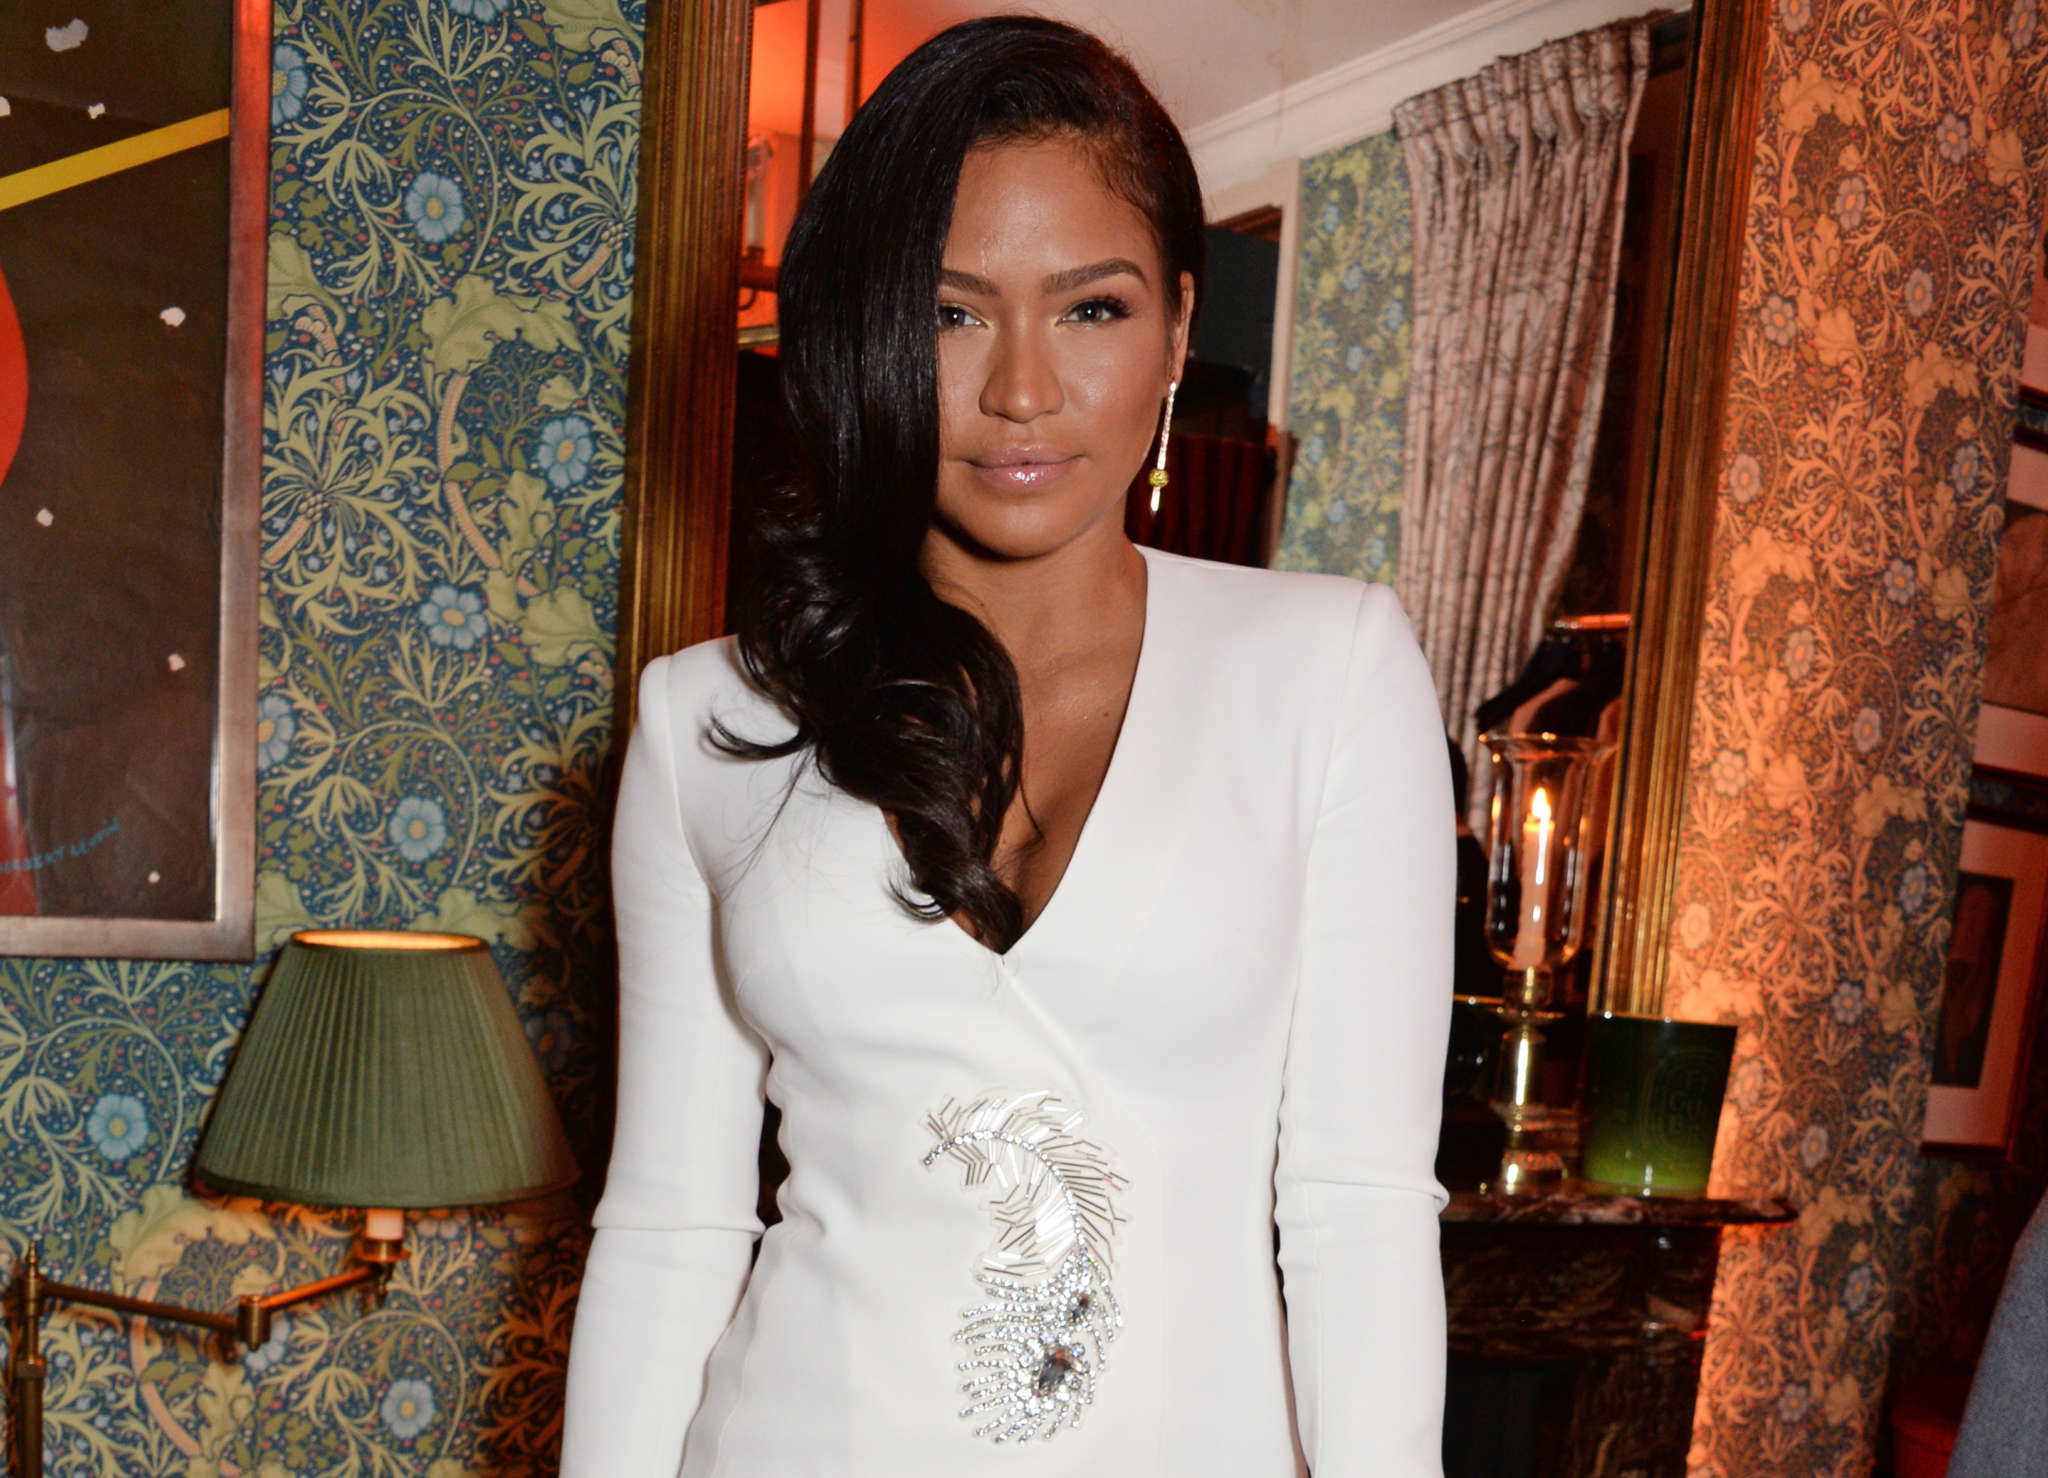 Cassie Impresses Fans With This Maternity Shot - She's Wearing Nothing But Fishnets And Heels